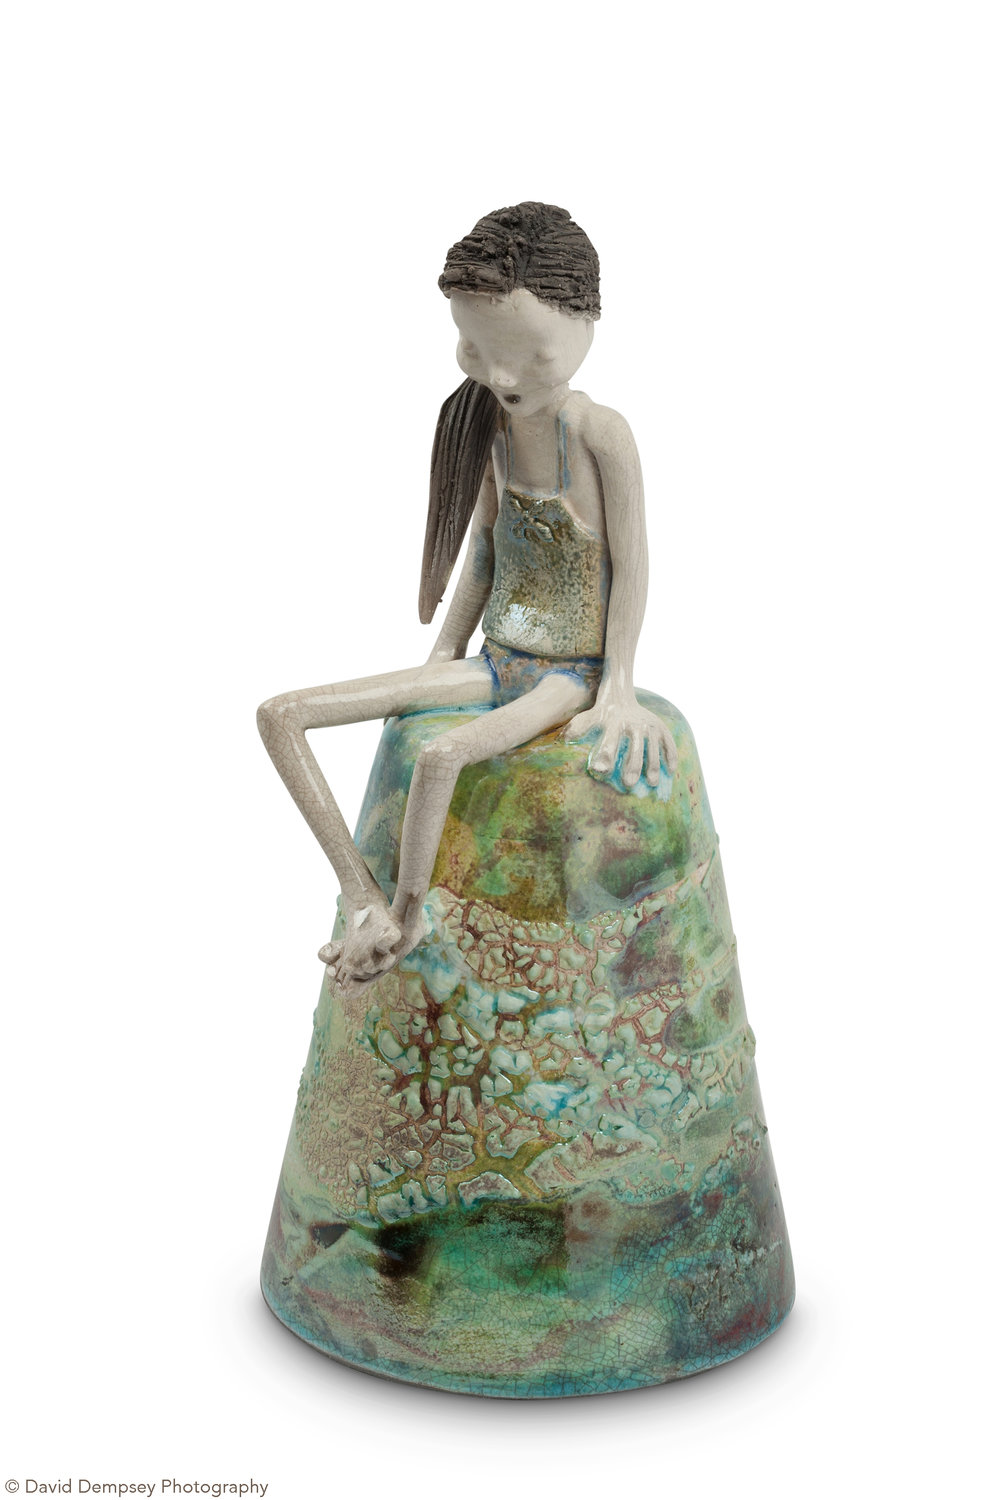 Ian Carty Ceramics